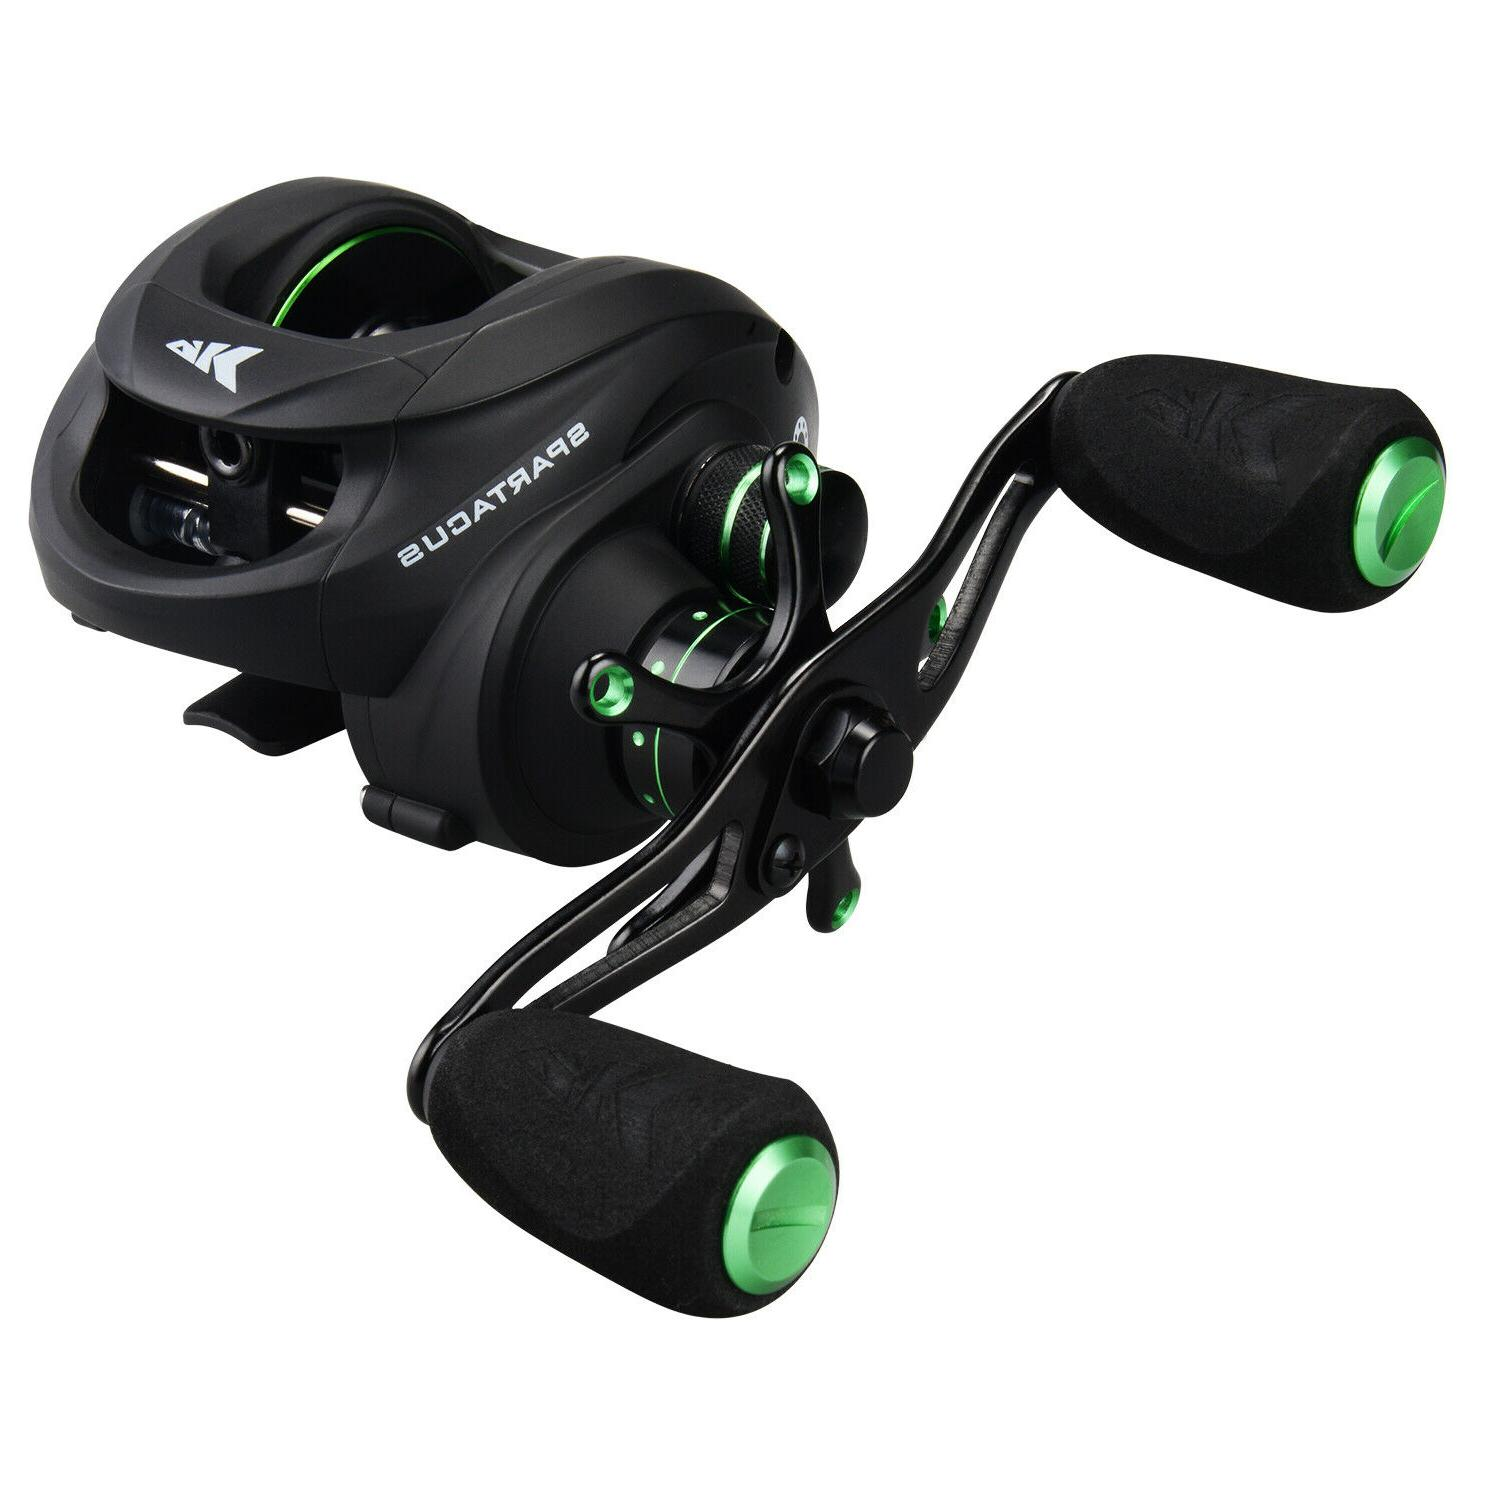 spartacus baitcasting reel multicolor lure fishing reels